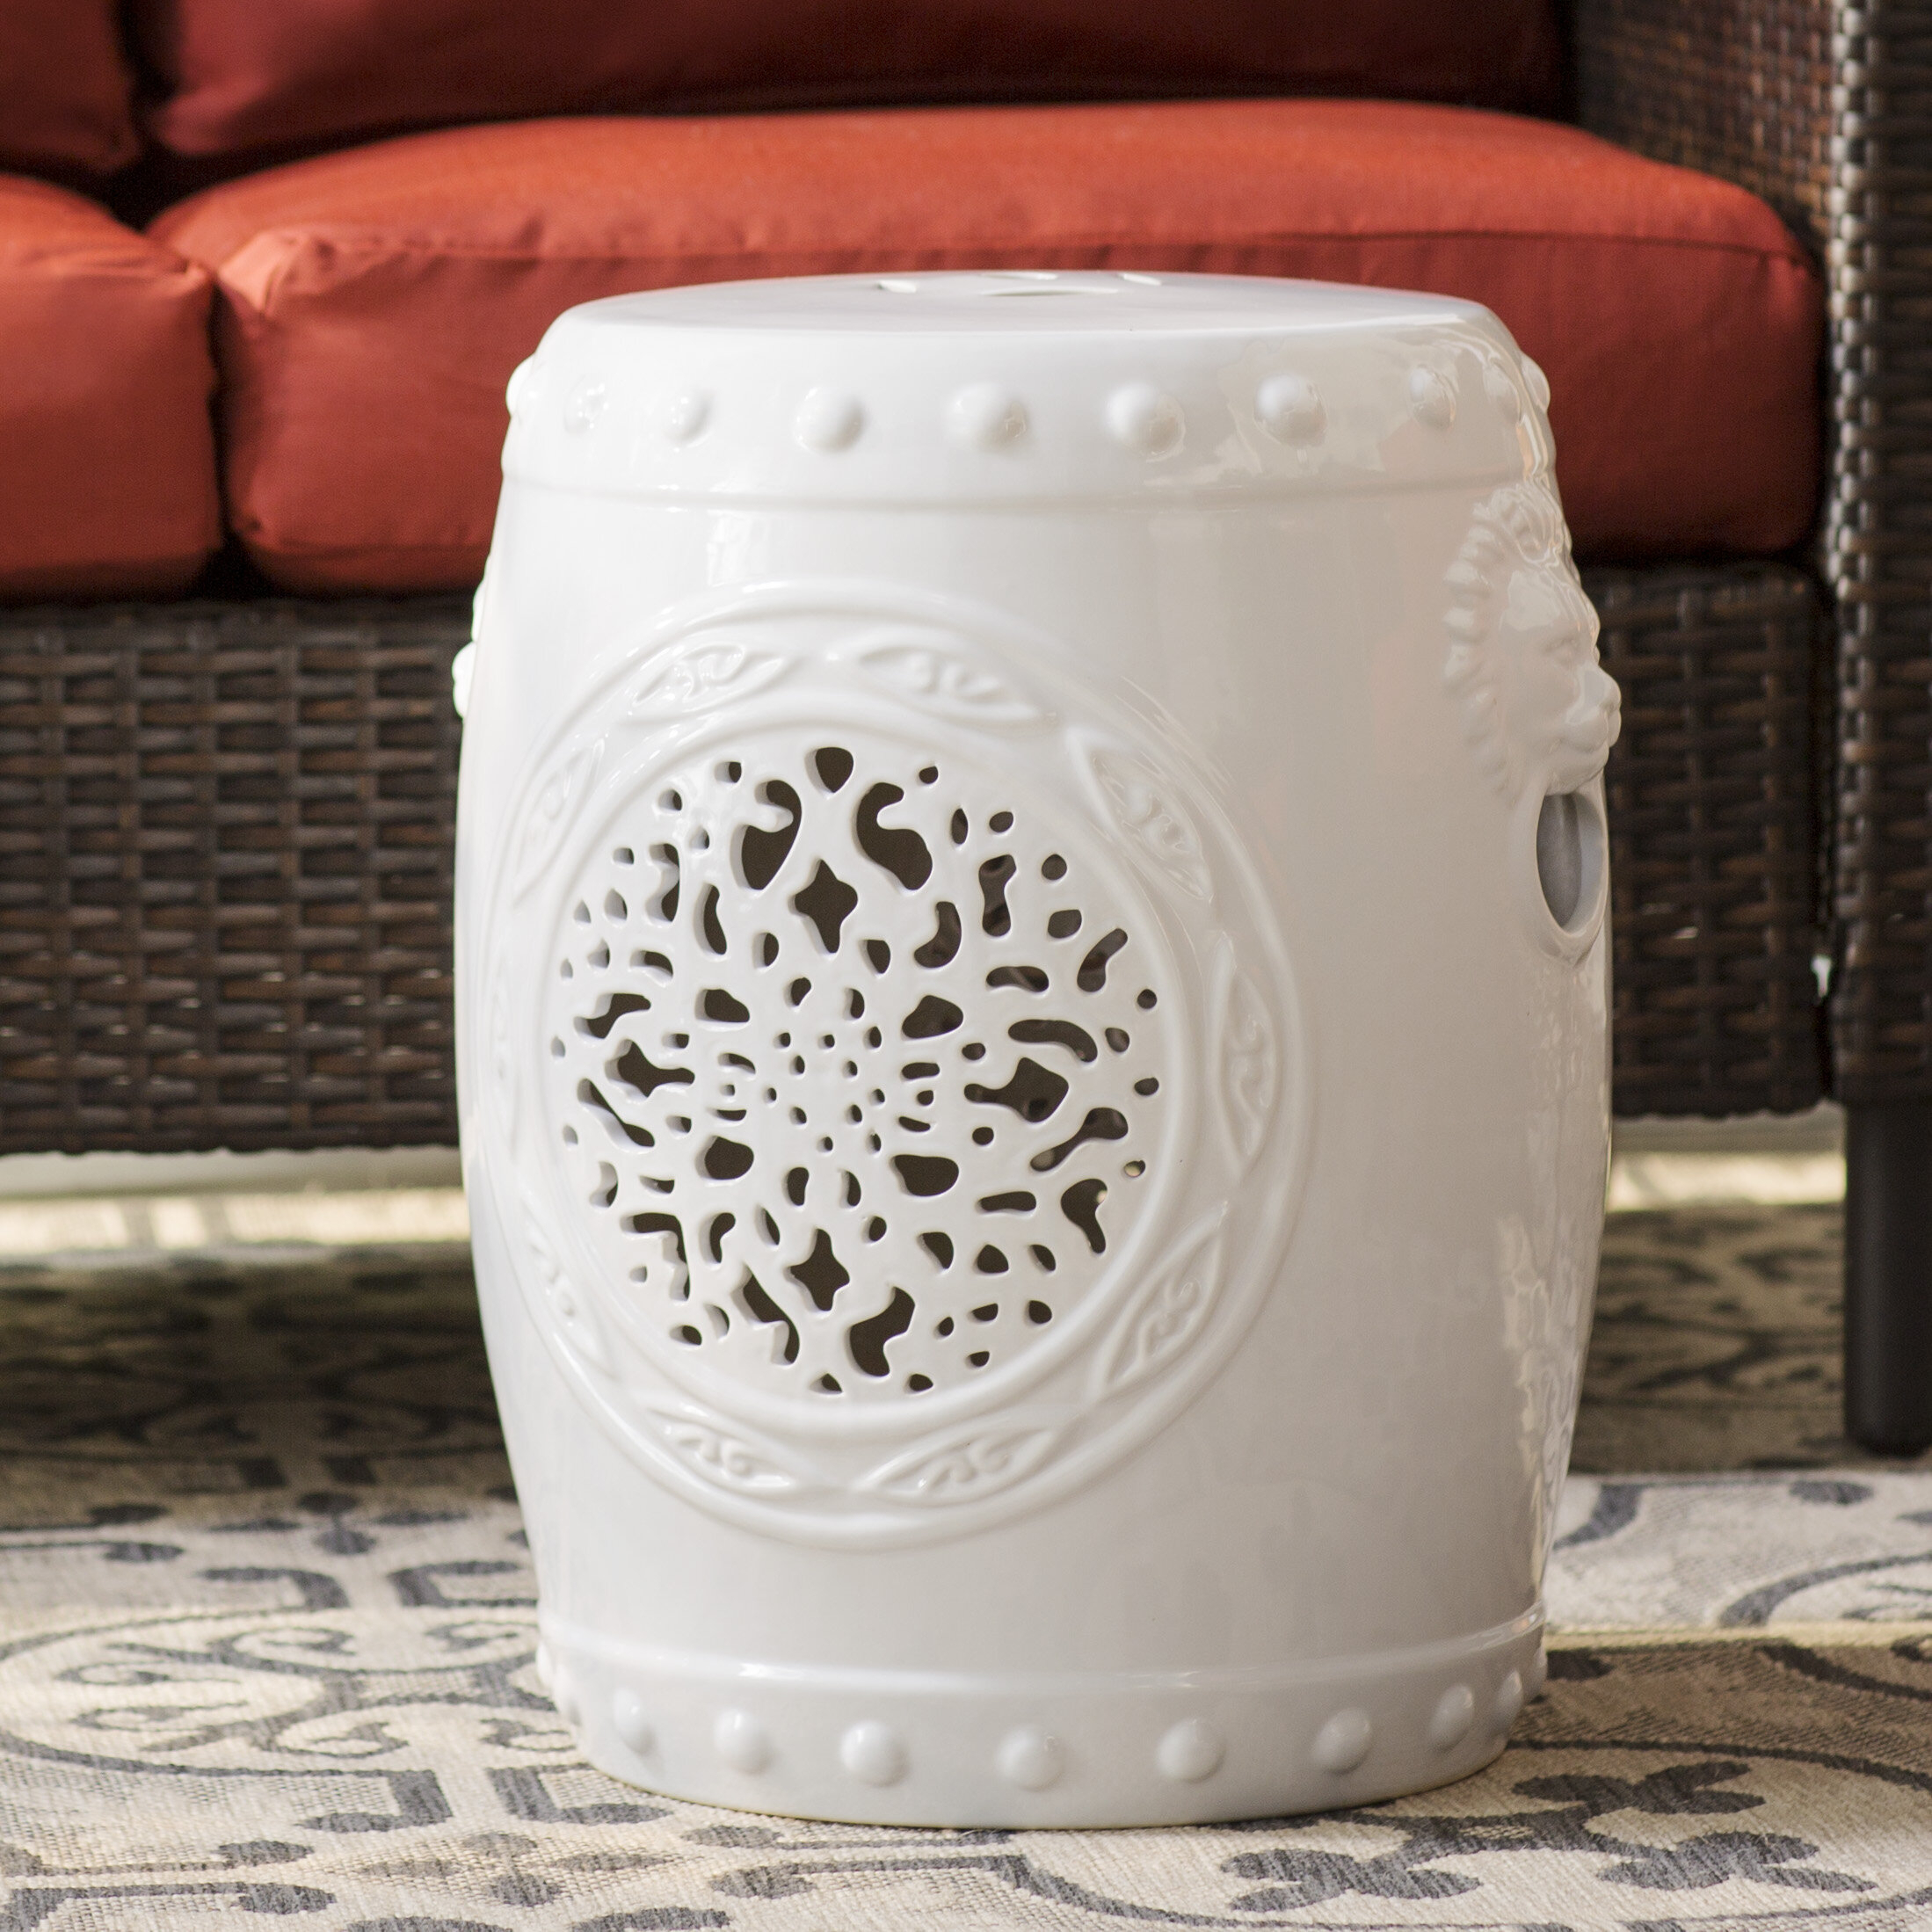 Garden White Accent Stools You'Ll Love In 2020 | Wayfair With Regard To Swanson Ceramic Garden Stools (View 11 of 25)